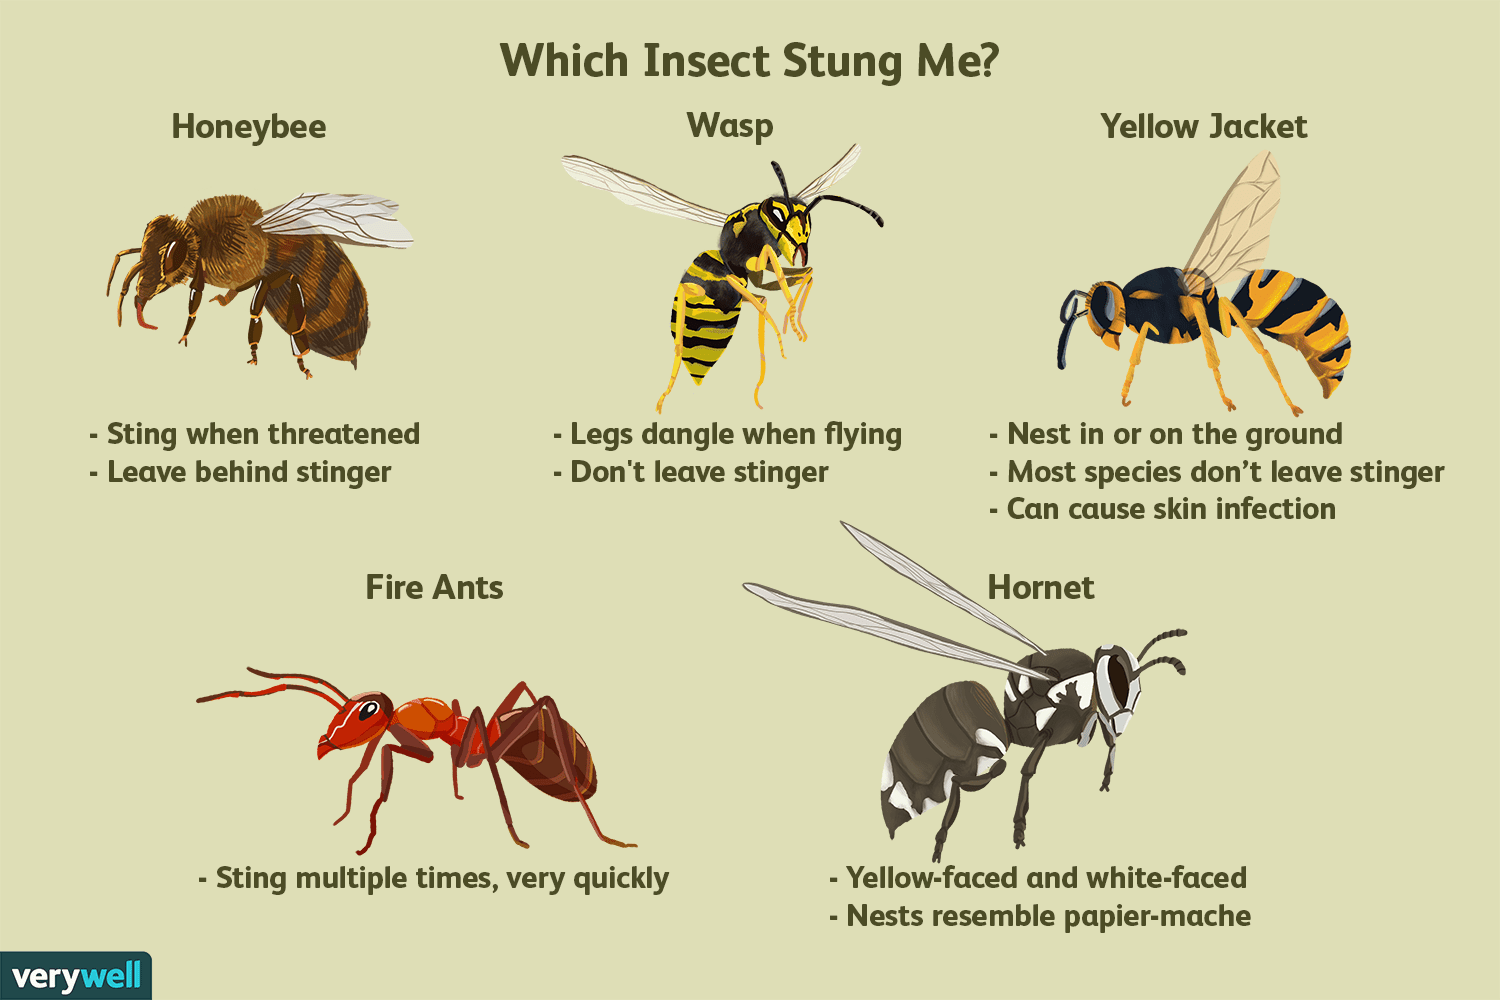 Which Insect Stung Me